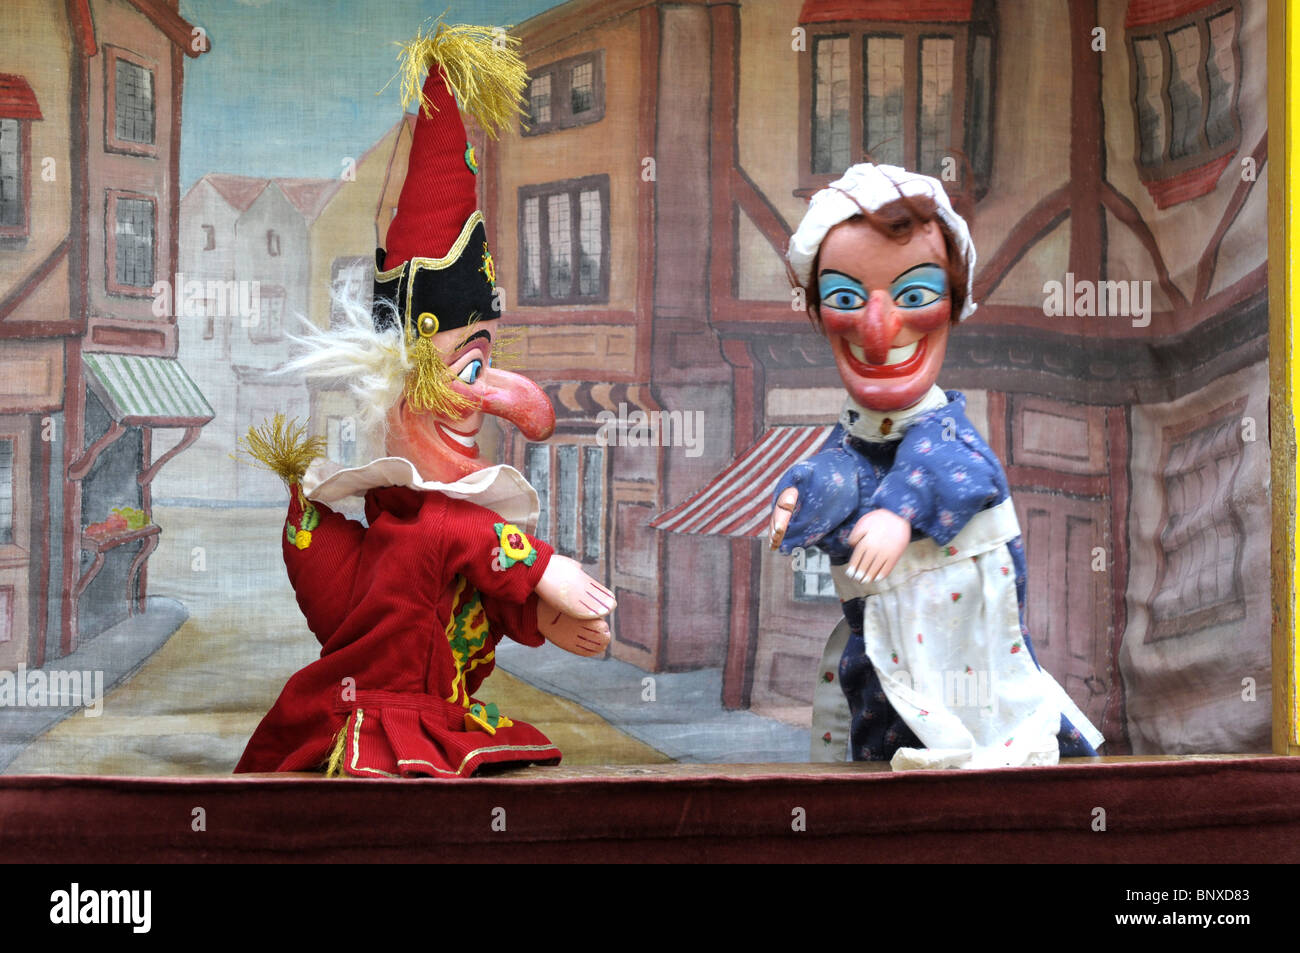 Punch Amp Judy In The Festival At St Paul S Church In Covent